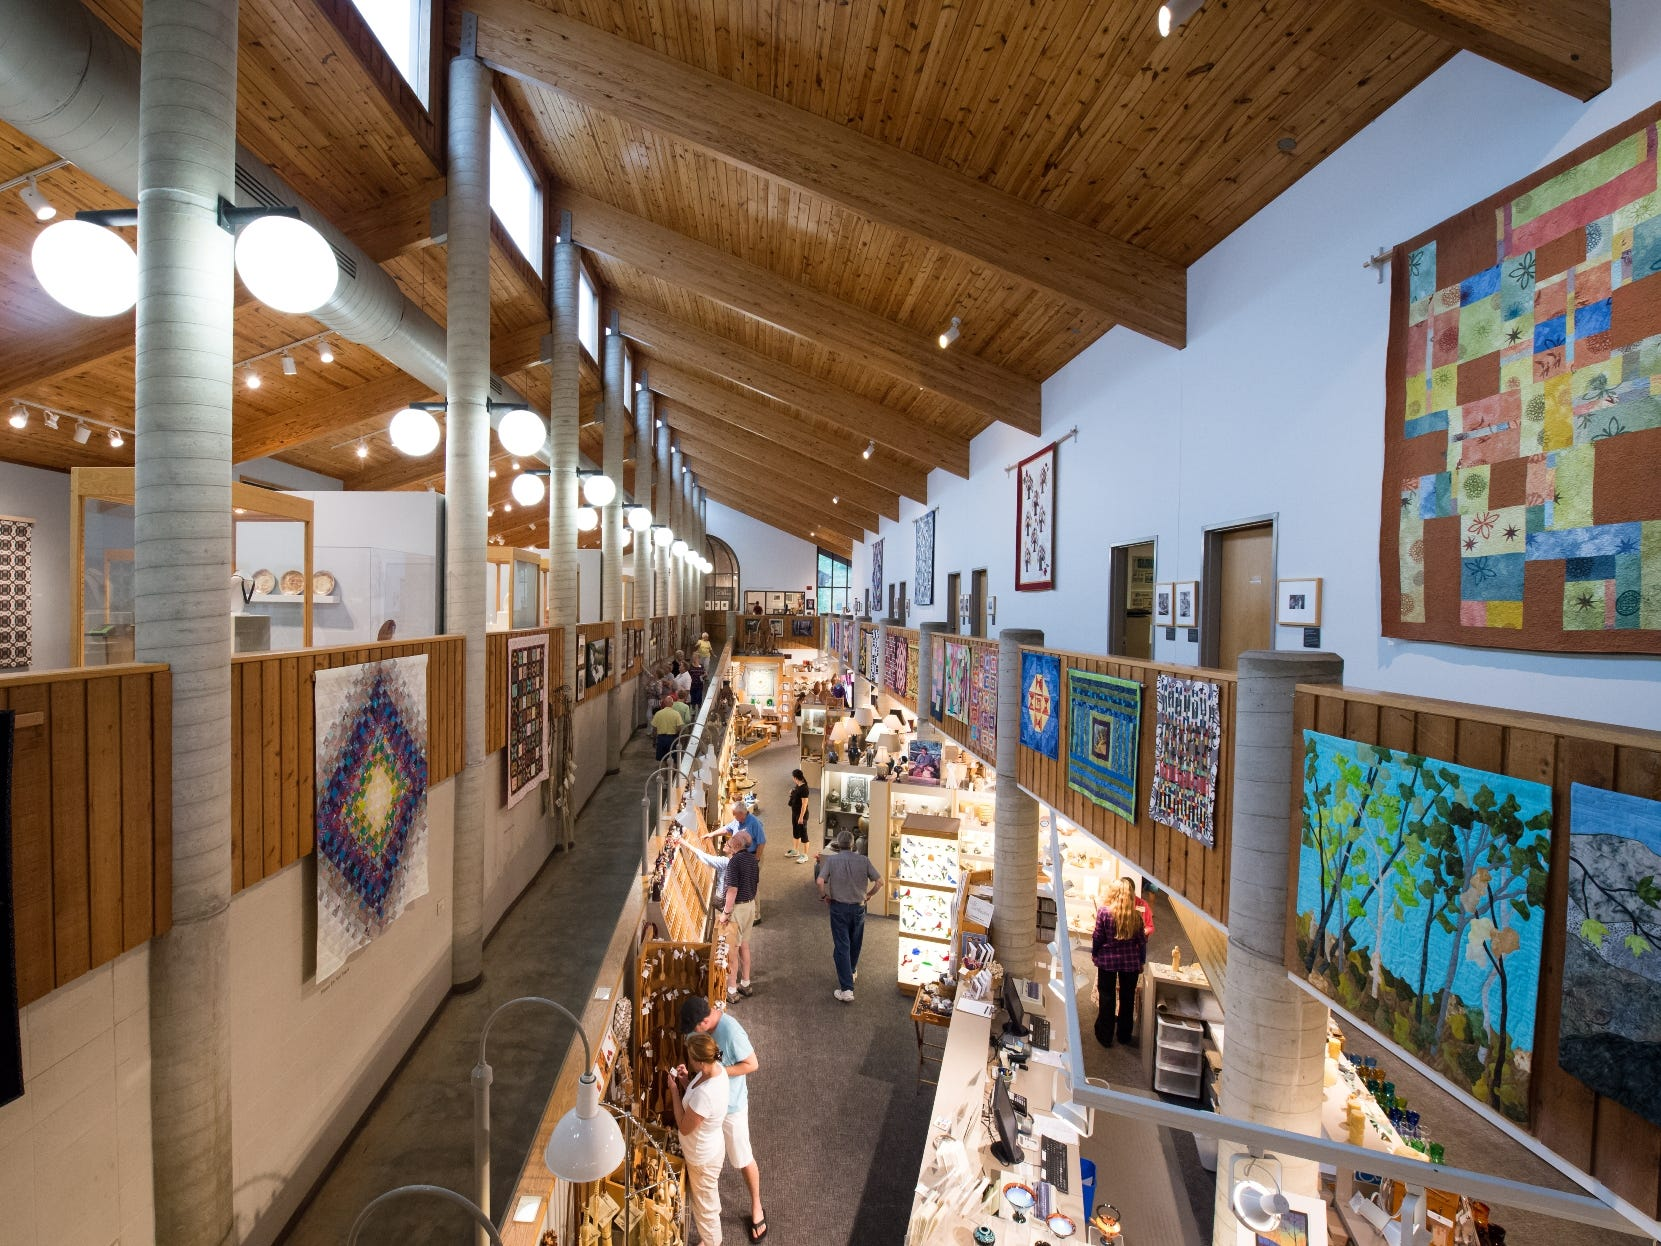 The North Carolina Folk Art Center in Asheville offers visitors a full Appalachian immersion with a museum, hiking, and daily craft demonstrations.